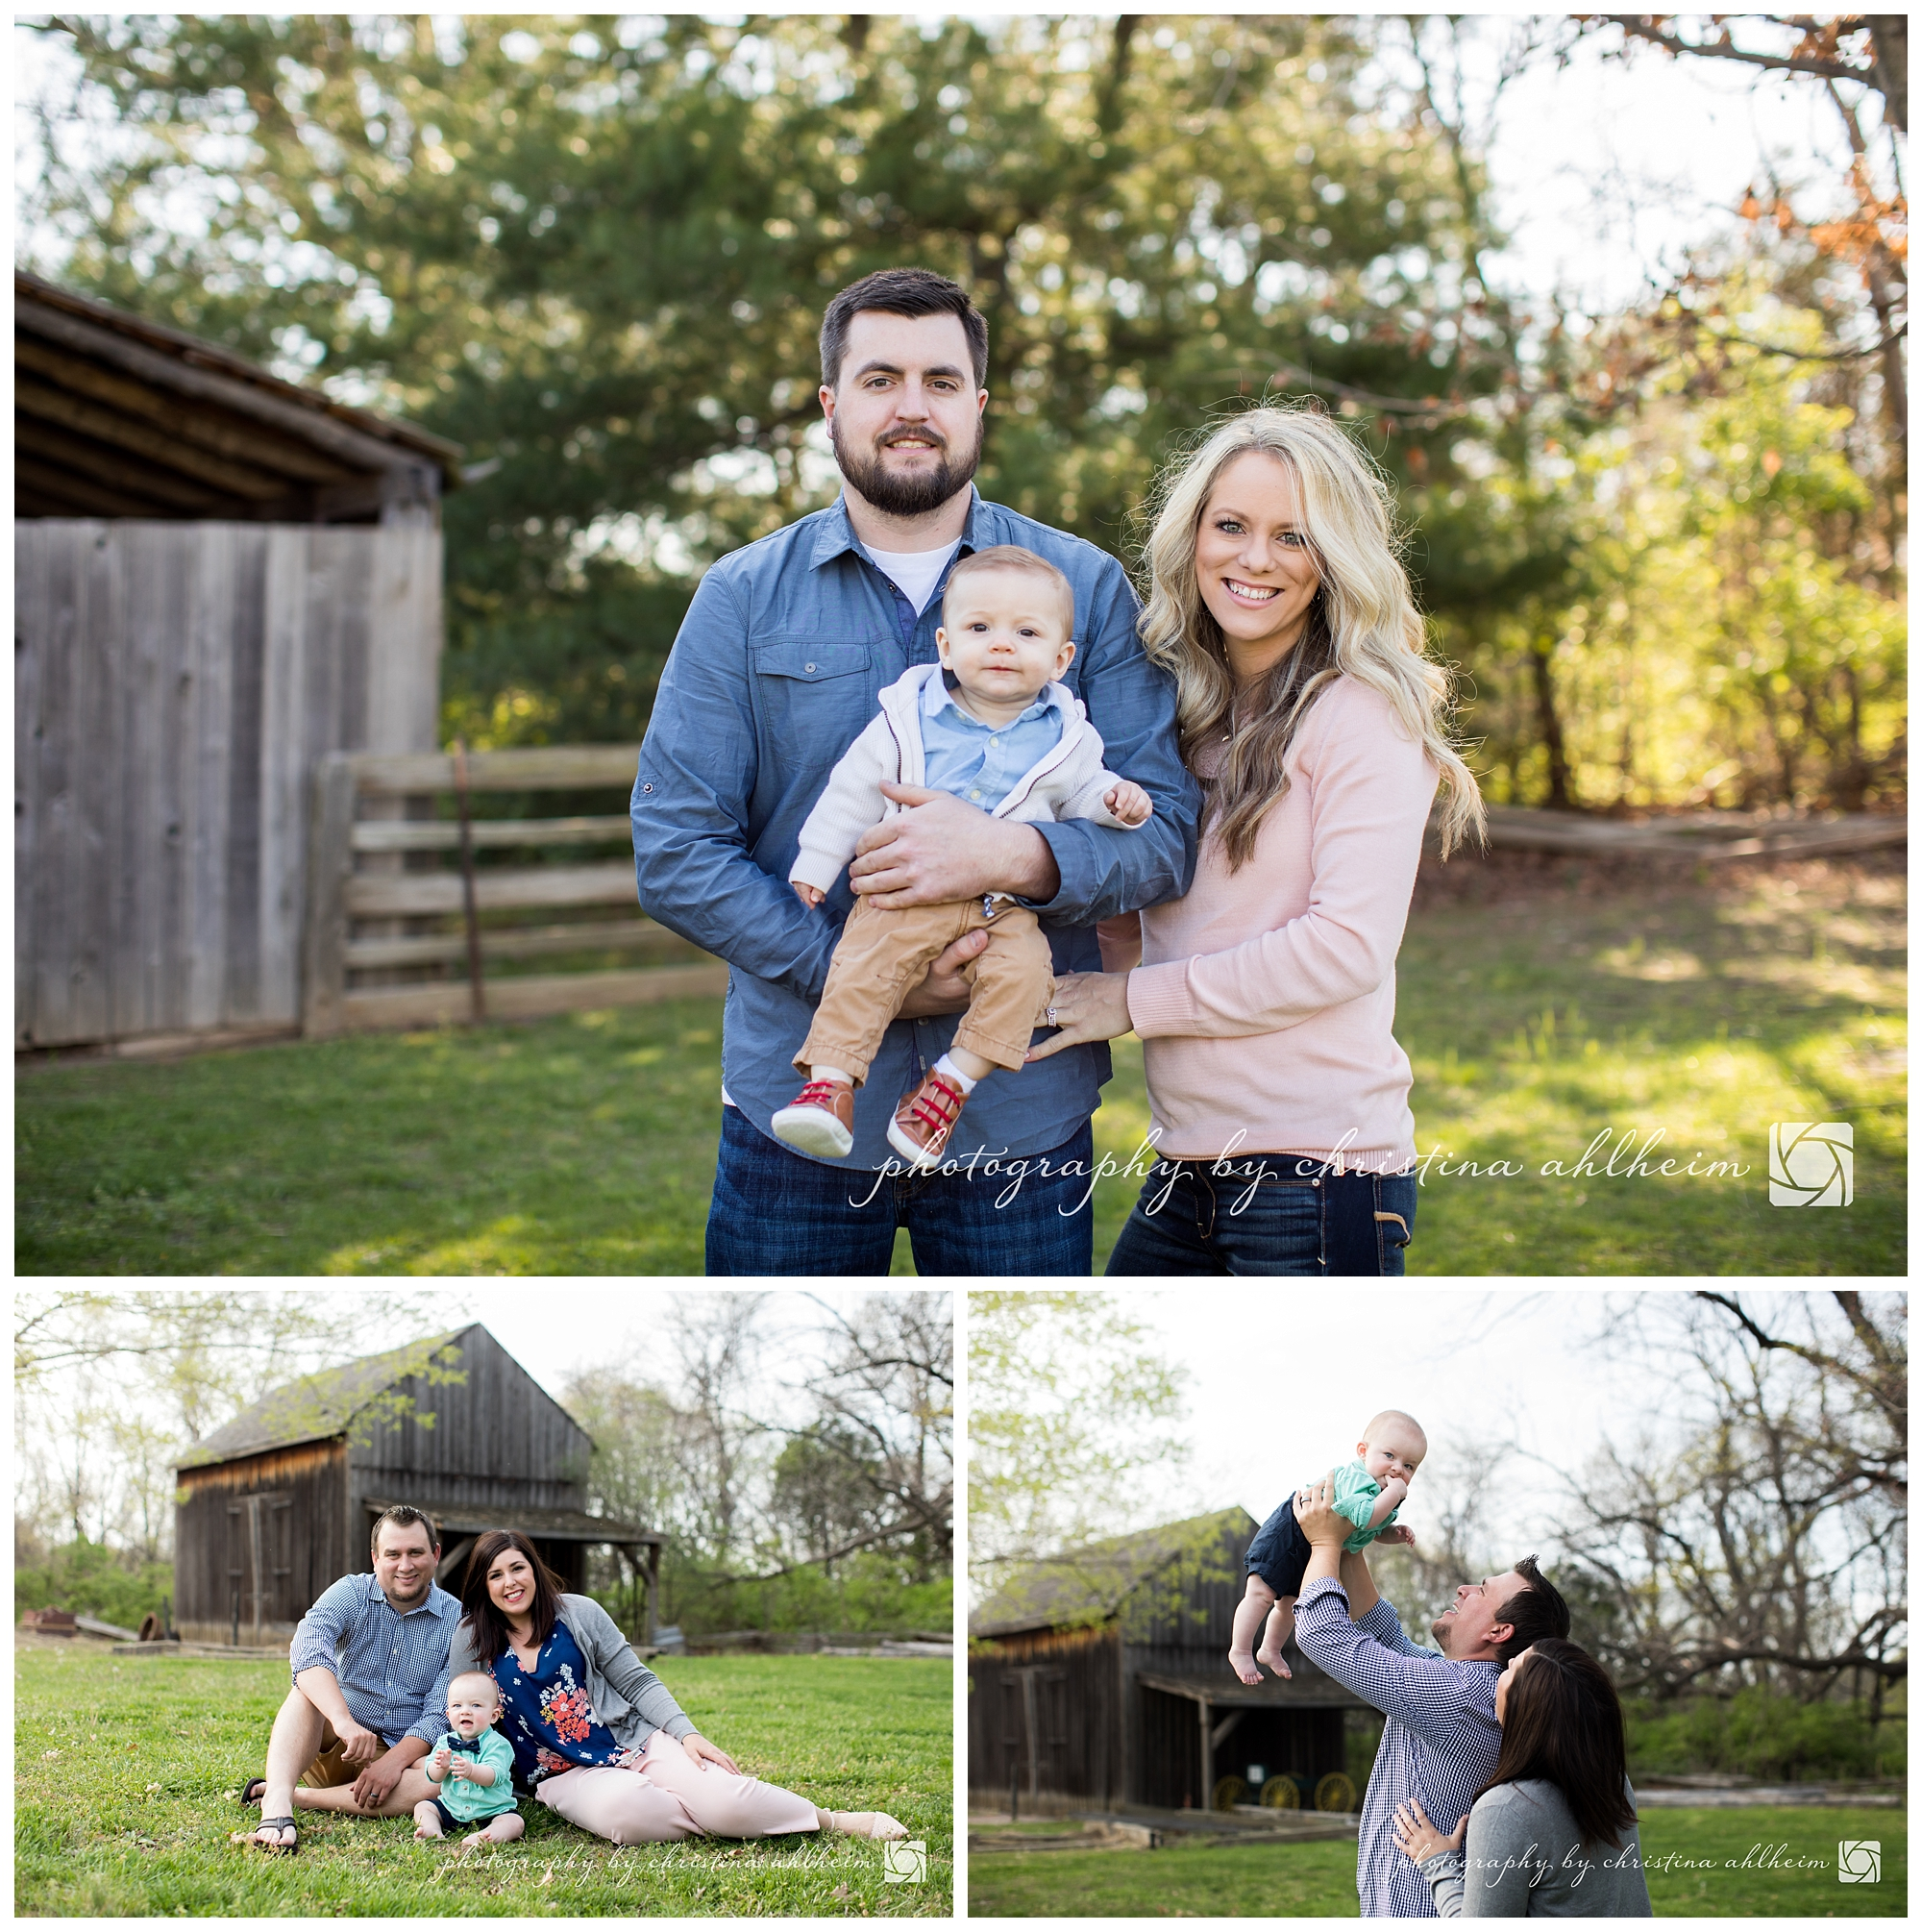 St. Louis Photography Location Ideas Faust Park Corbin_6mo-2